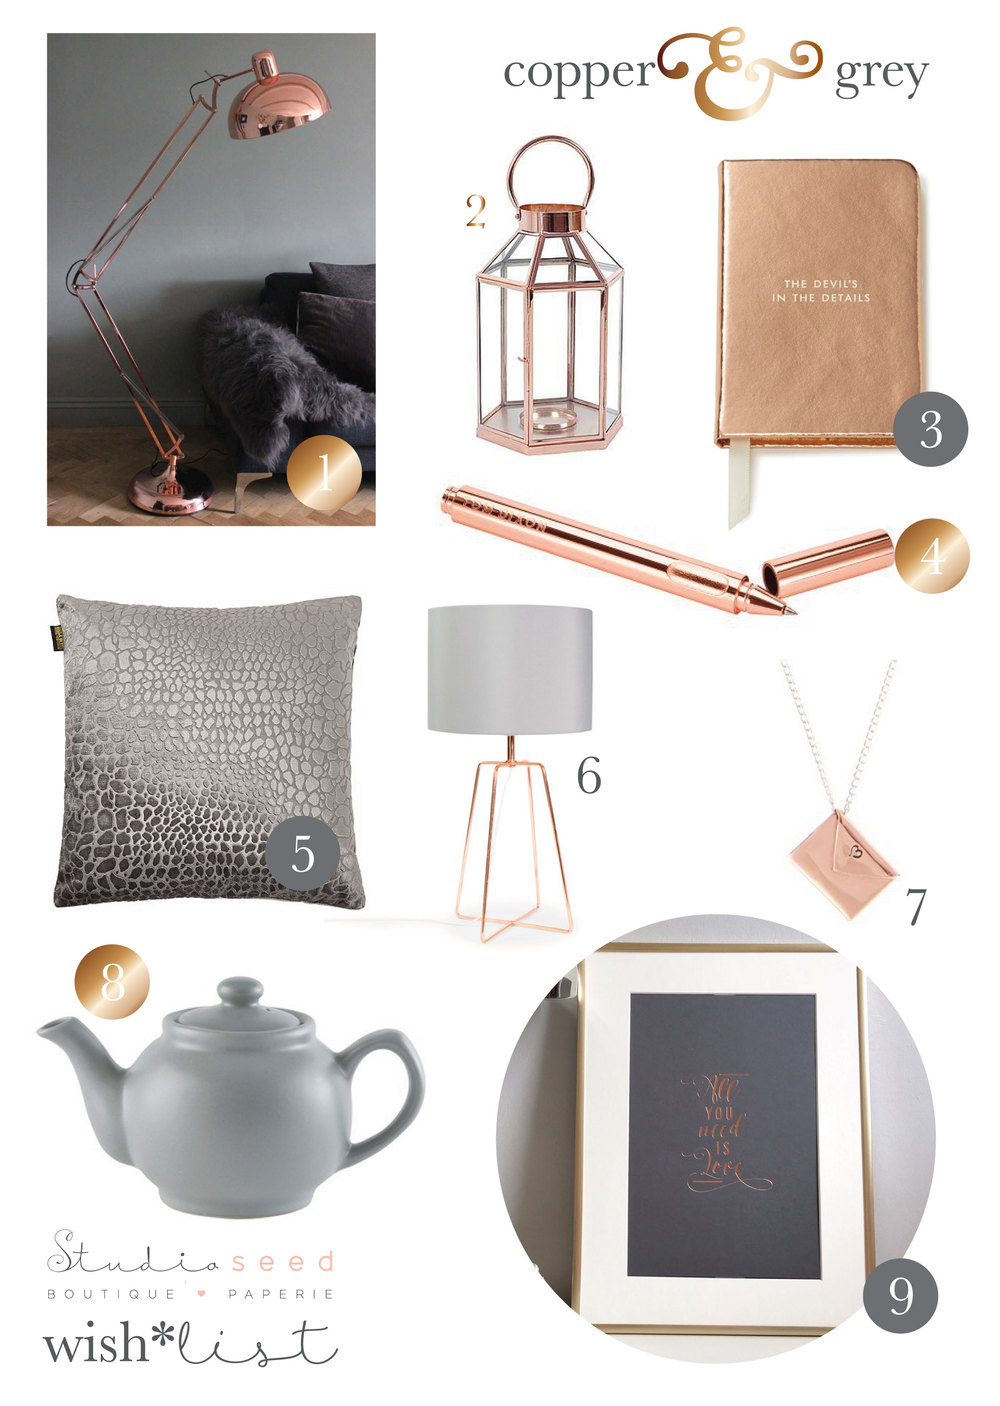 Copper and Grey wish*list by Studio Seed